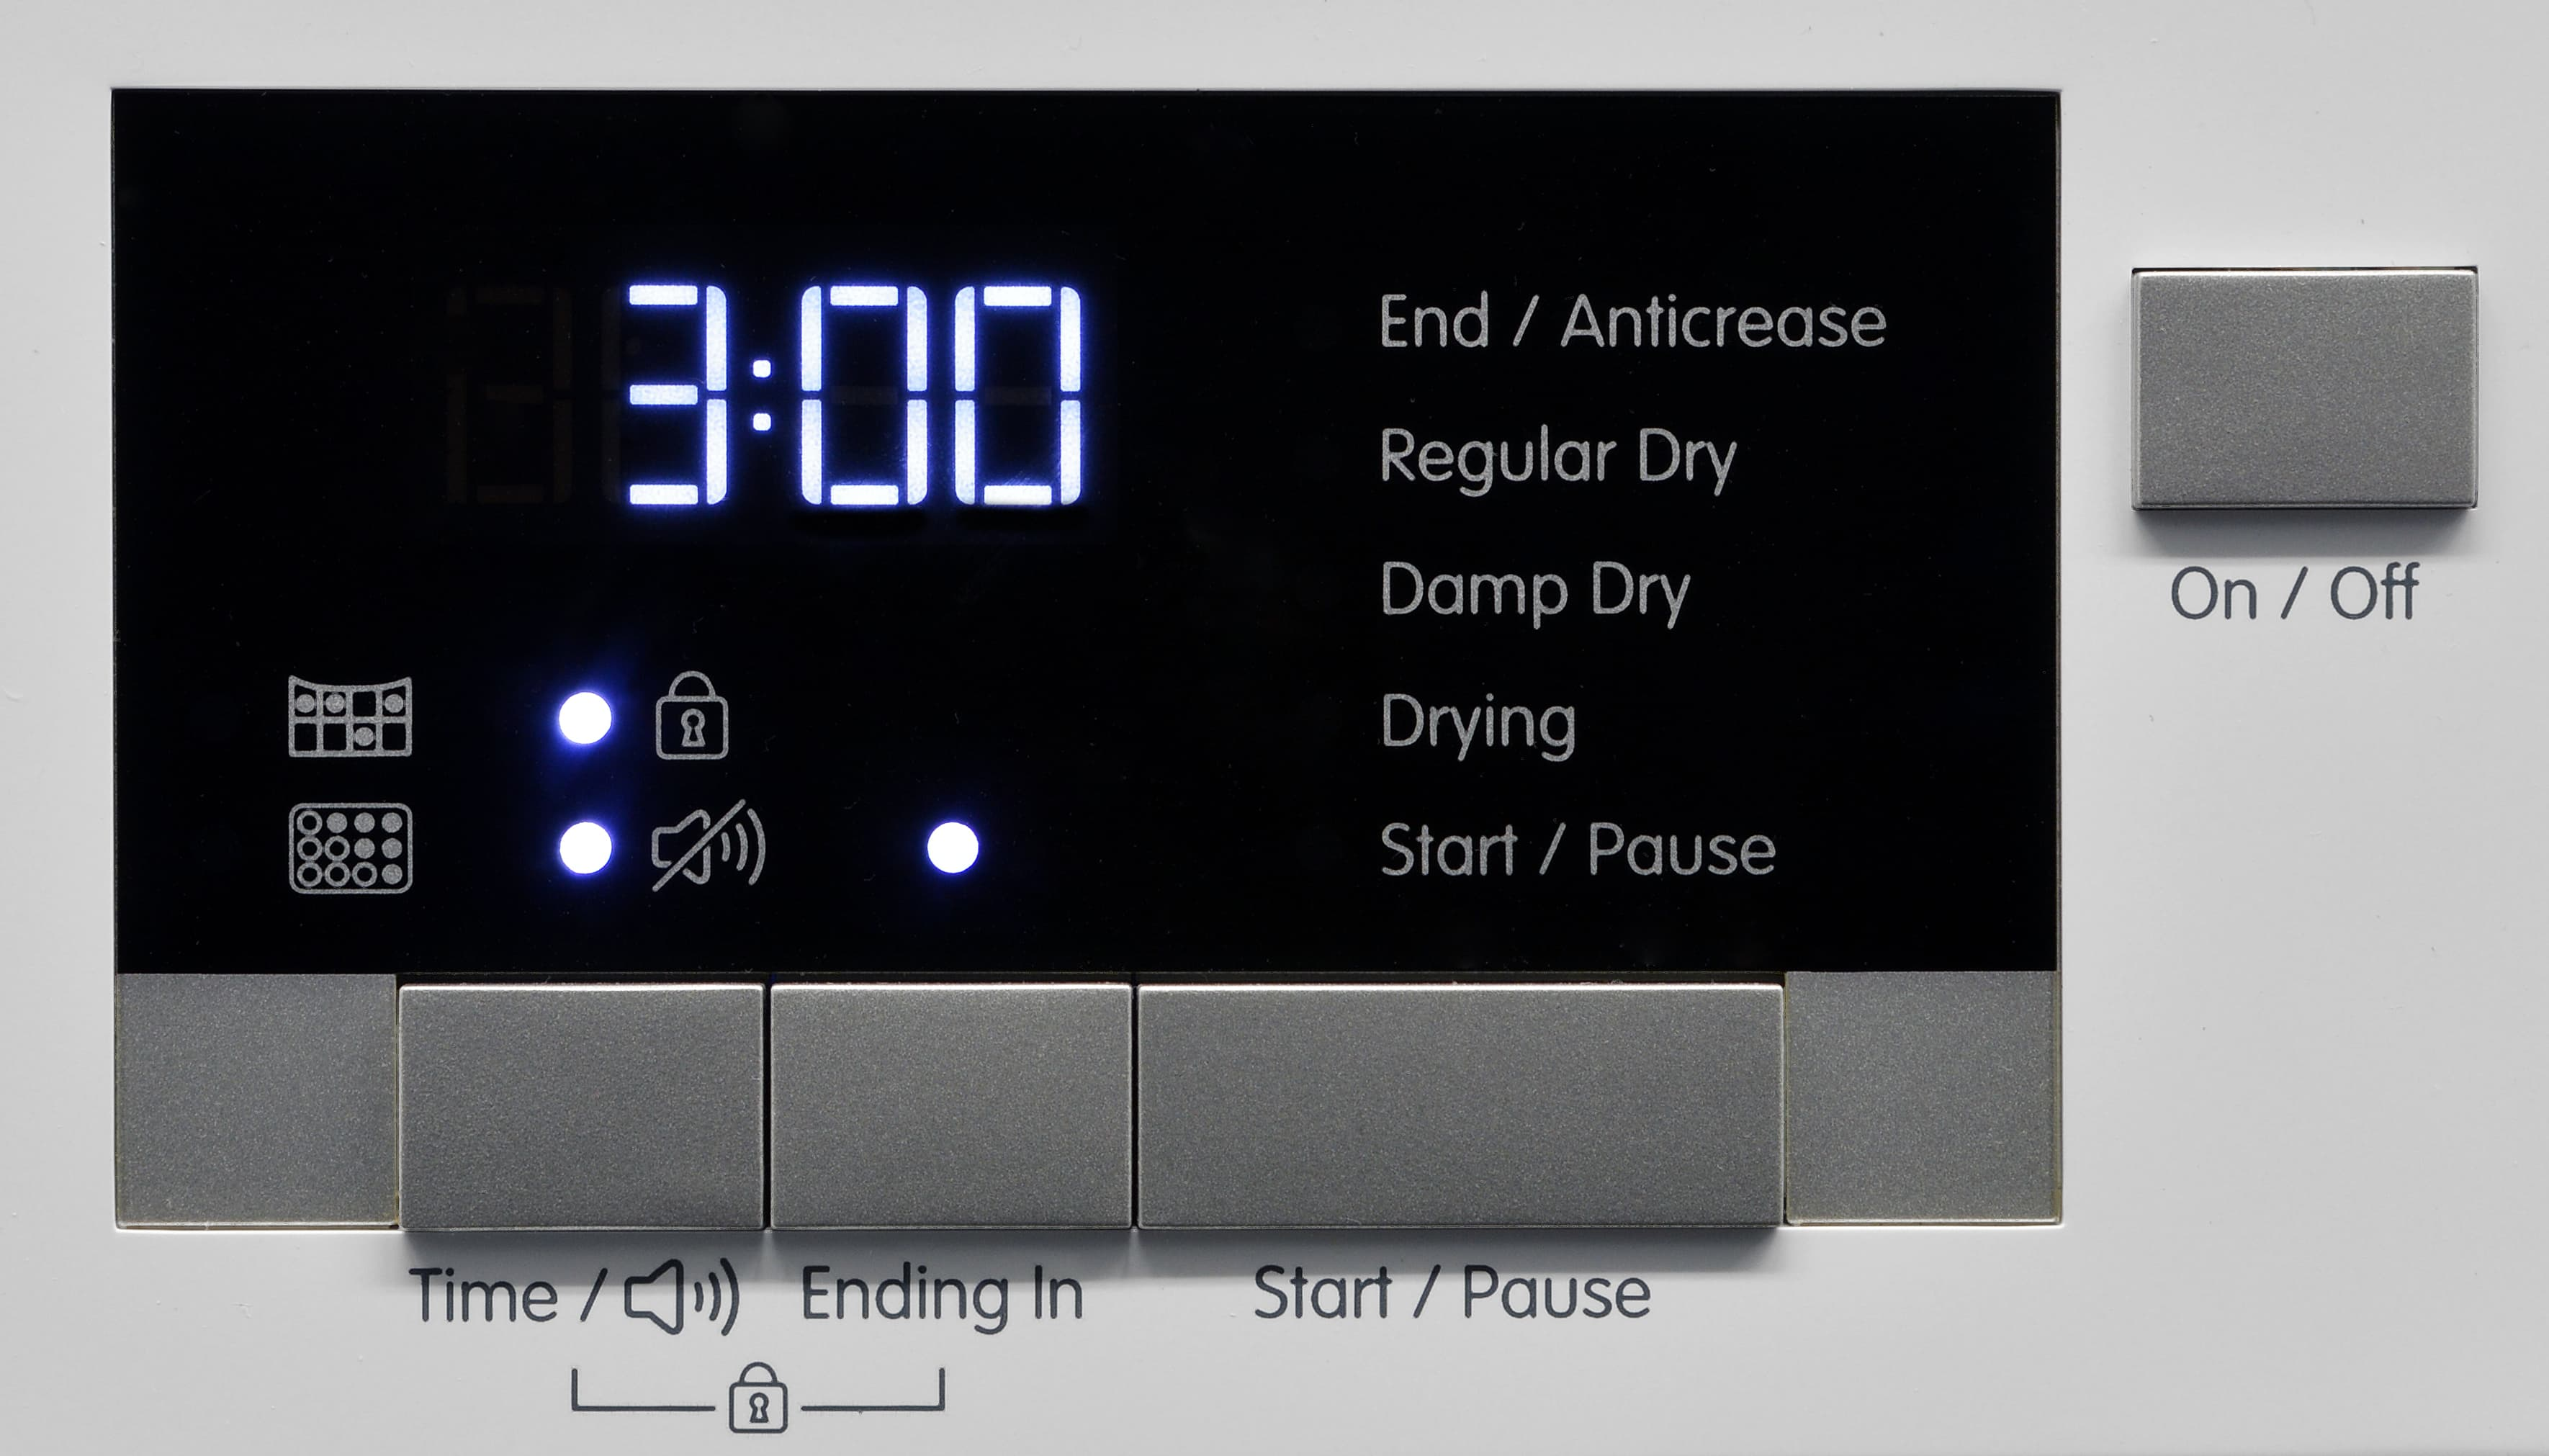 Without customizable options or extra features, the Blomberg DHP24412W's control panel basically serves as a timer and power switch.